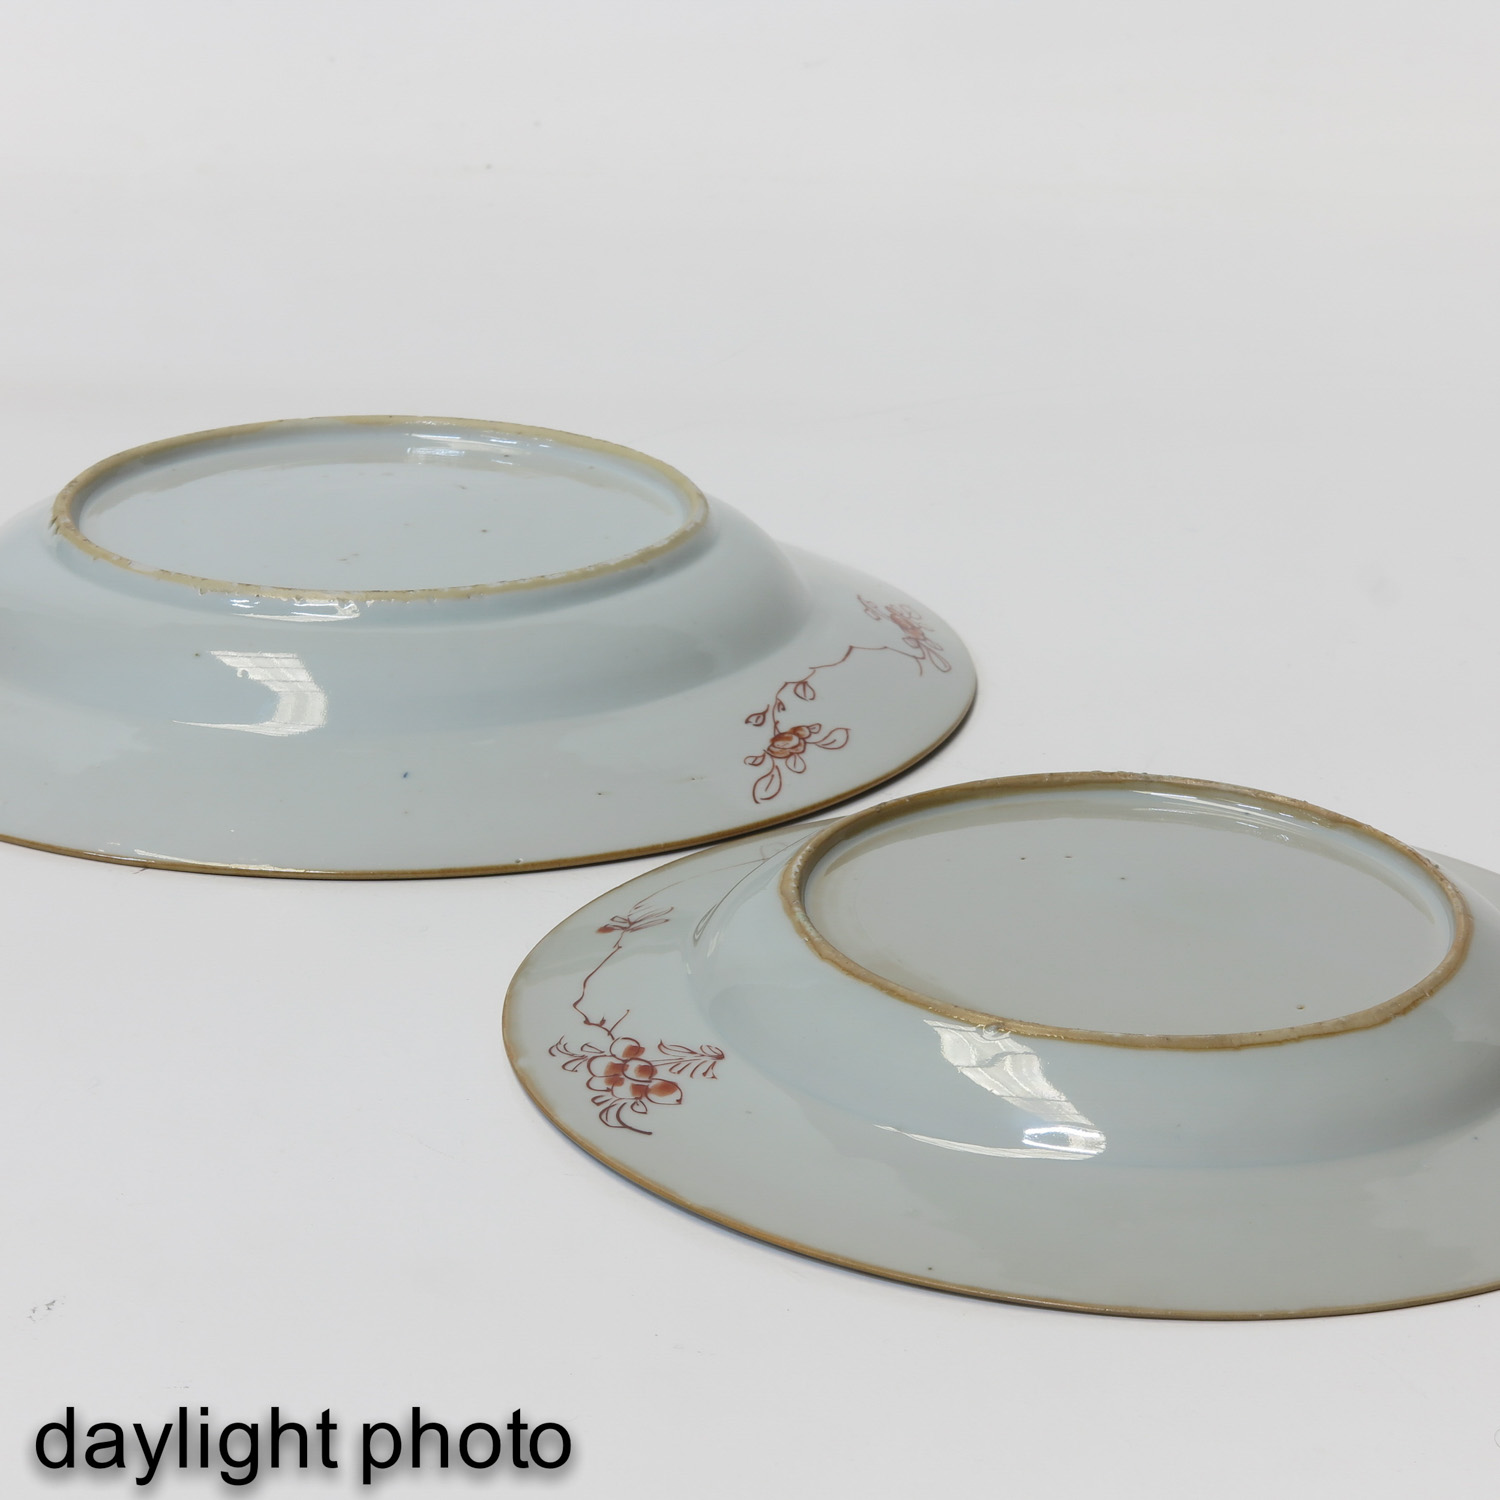 A Collection of 6 Polychrome Decor Plates - Image 8 of 9